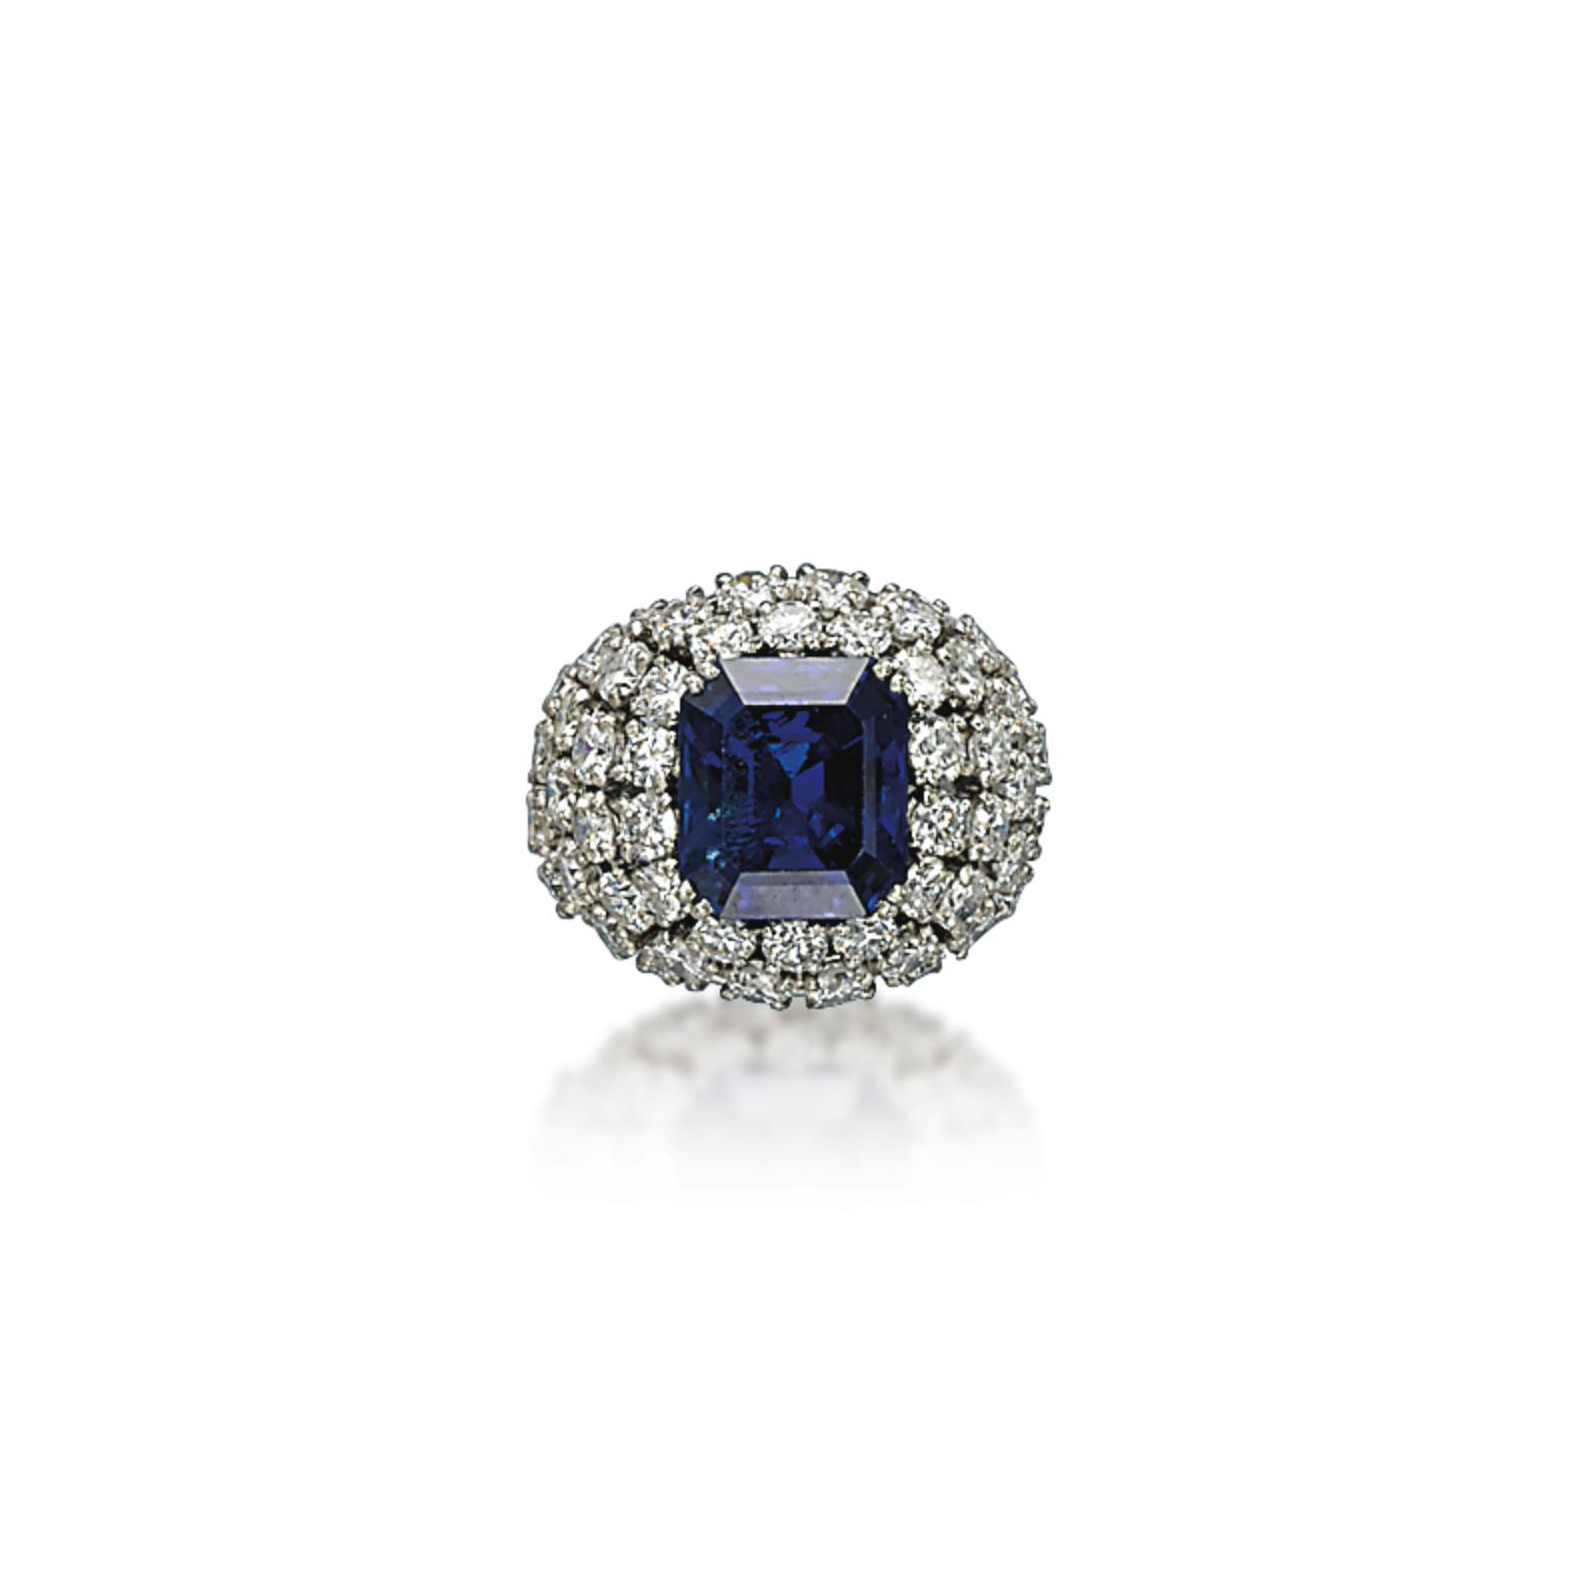 A SAPPHIRE AND DIAMOND RING, BY MARCHAK